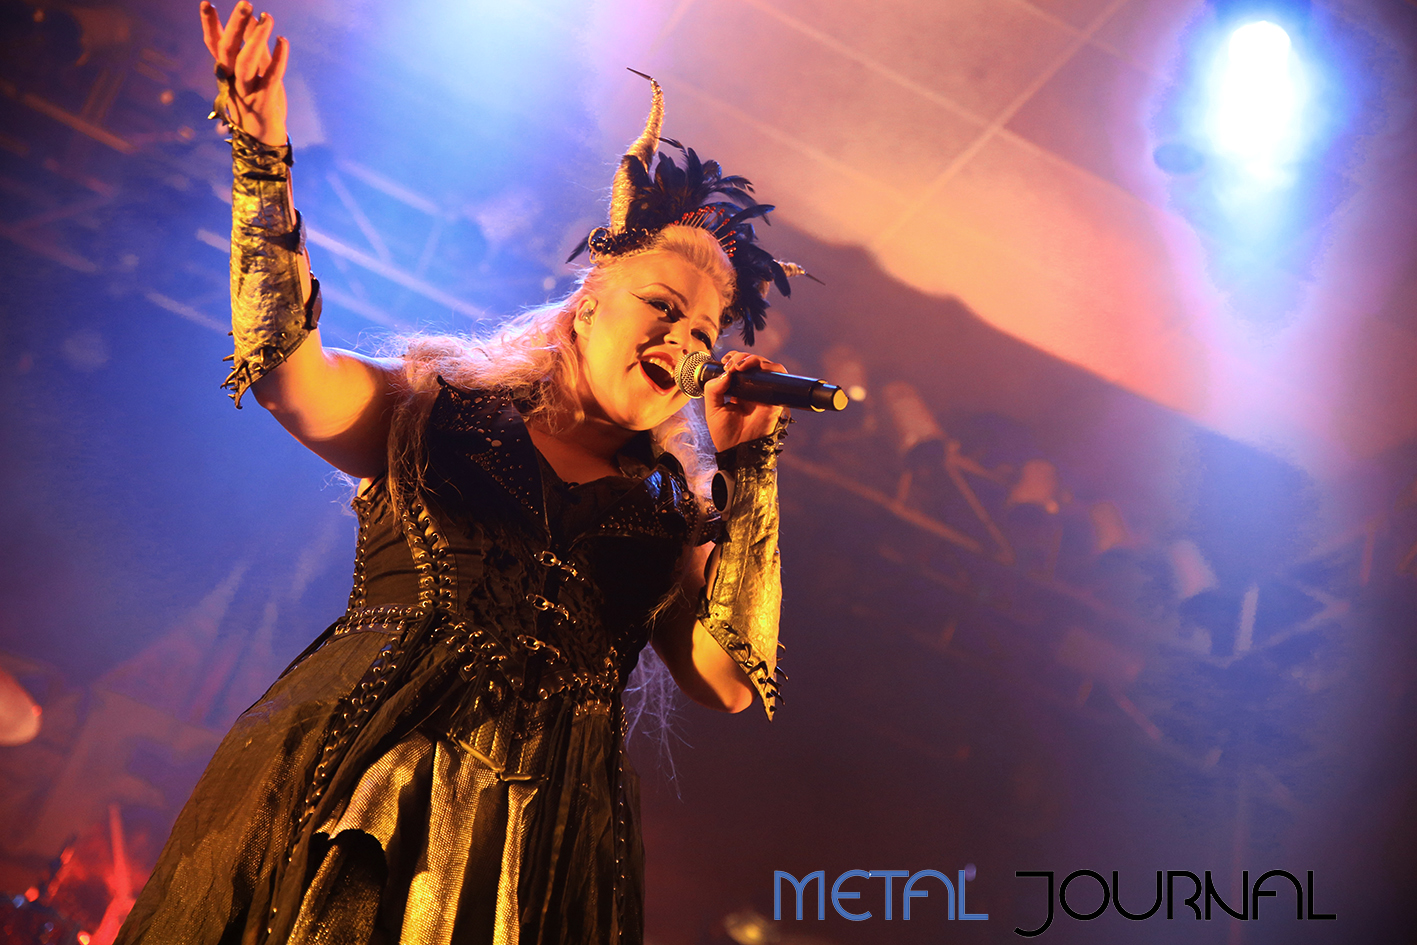 battle beast metal journal bilbao 2019 pic 10